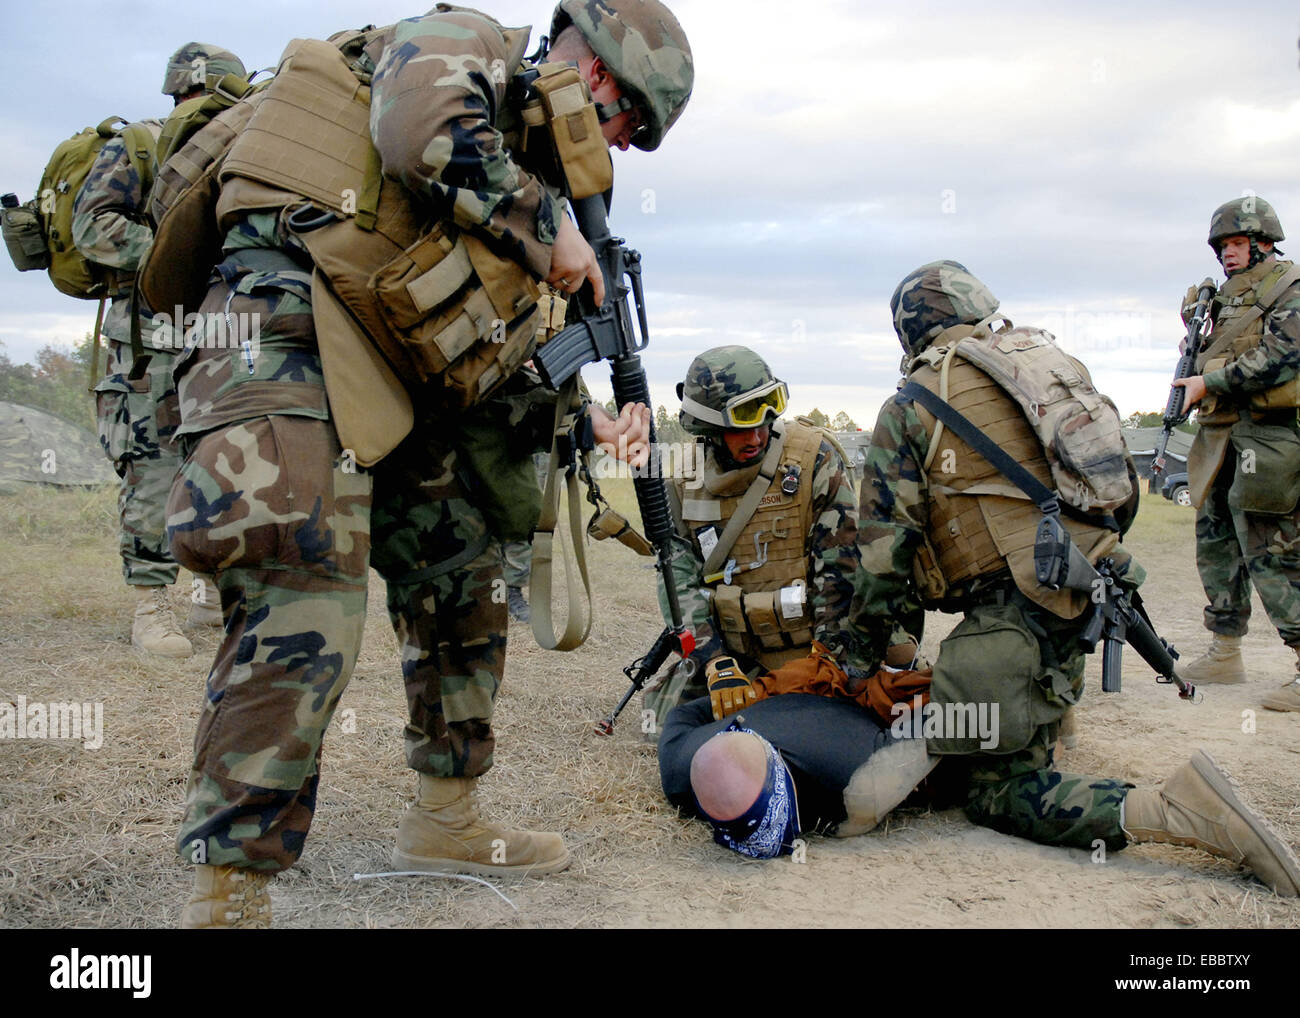 u s navy seabees stock photos u s navy seabees stock images alamy